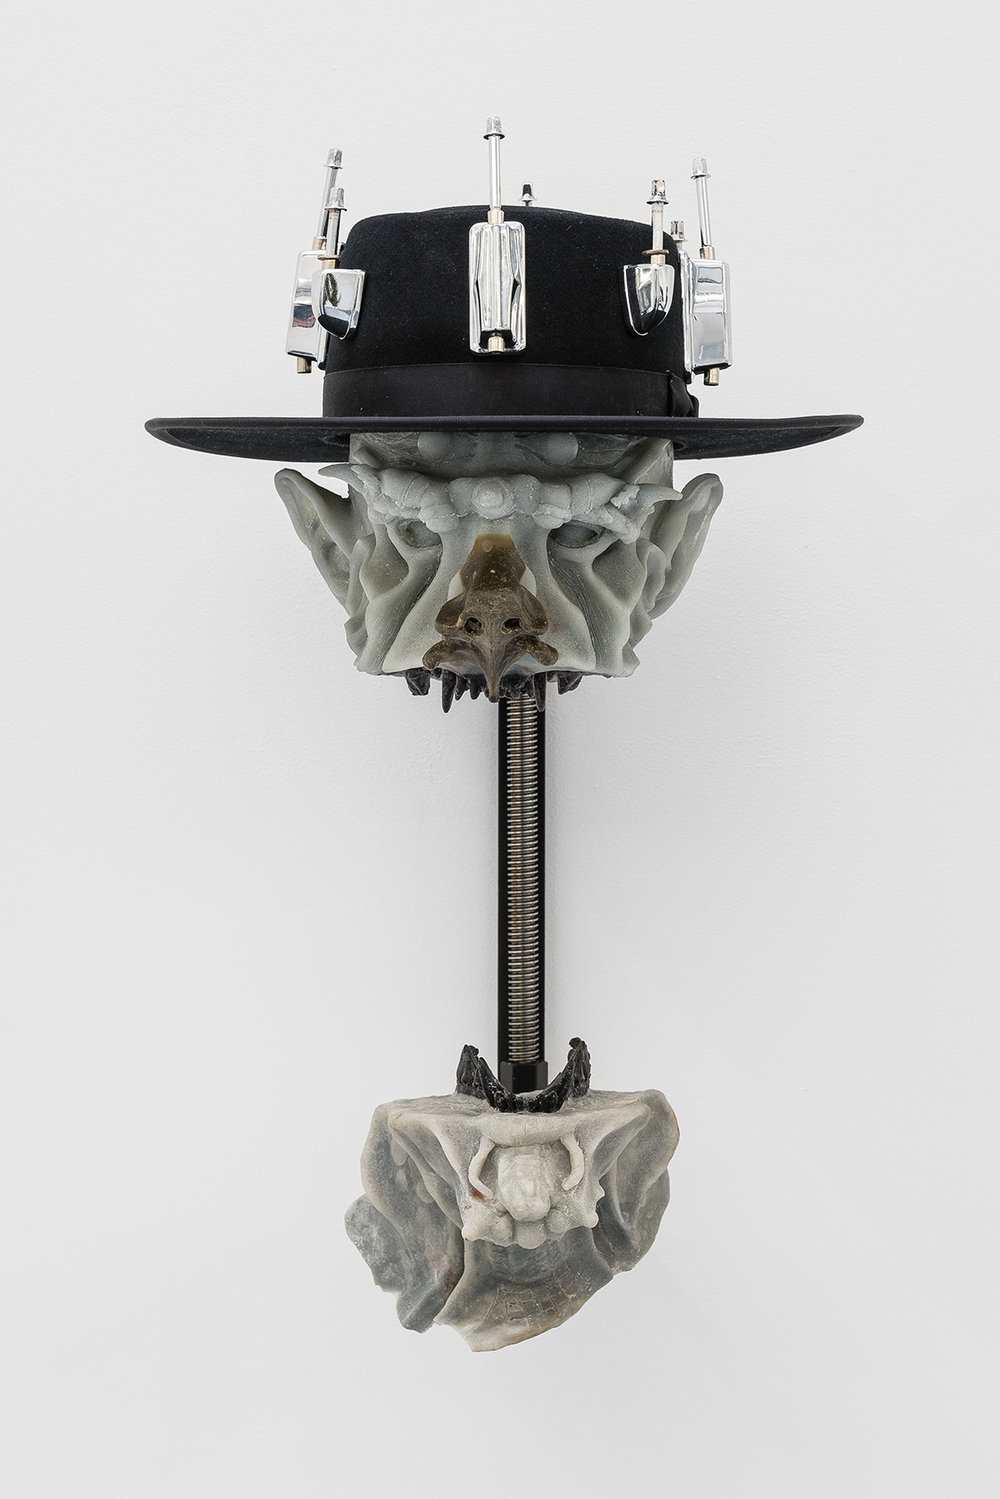 Bradford Kessler, Man with hat, 2016